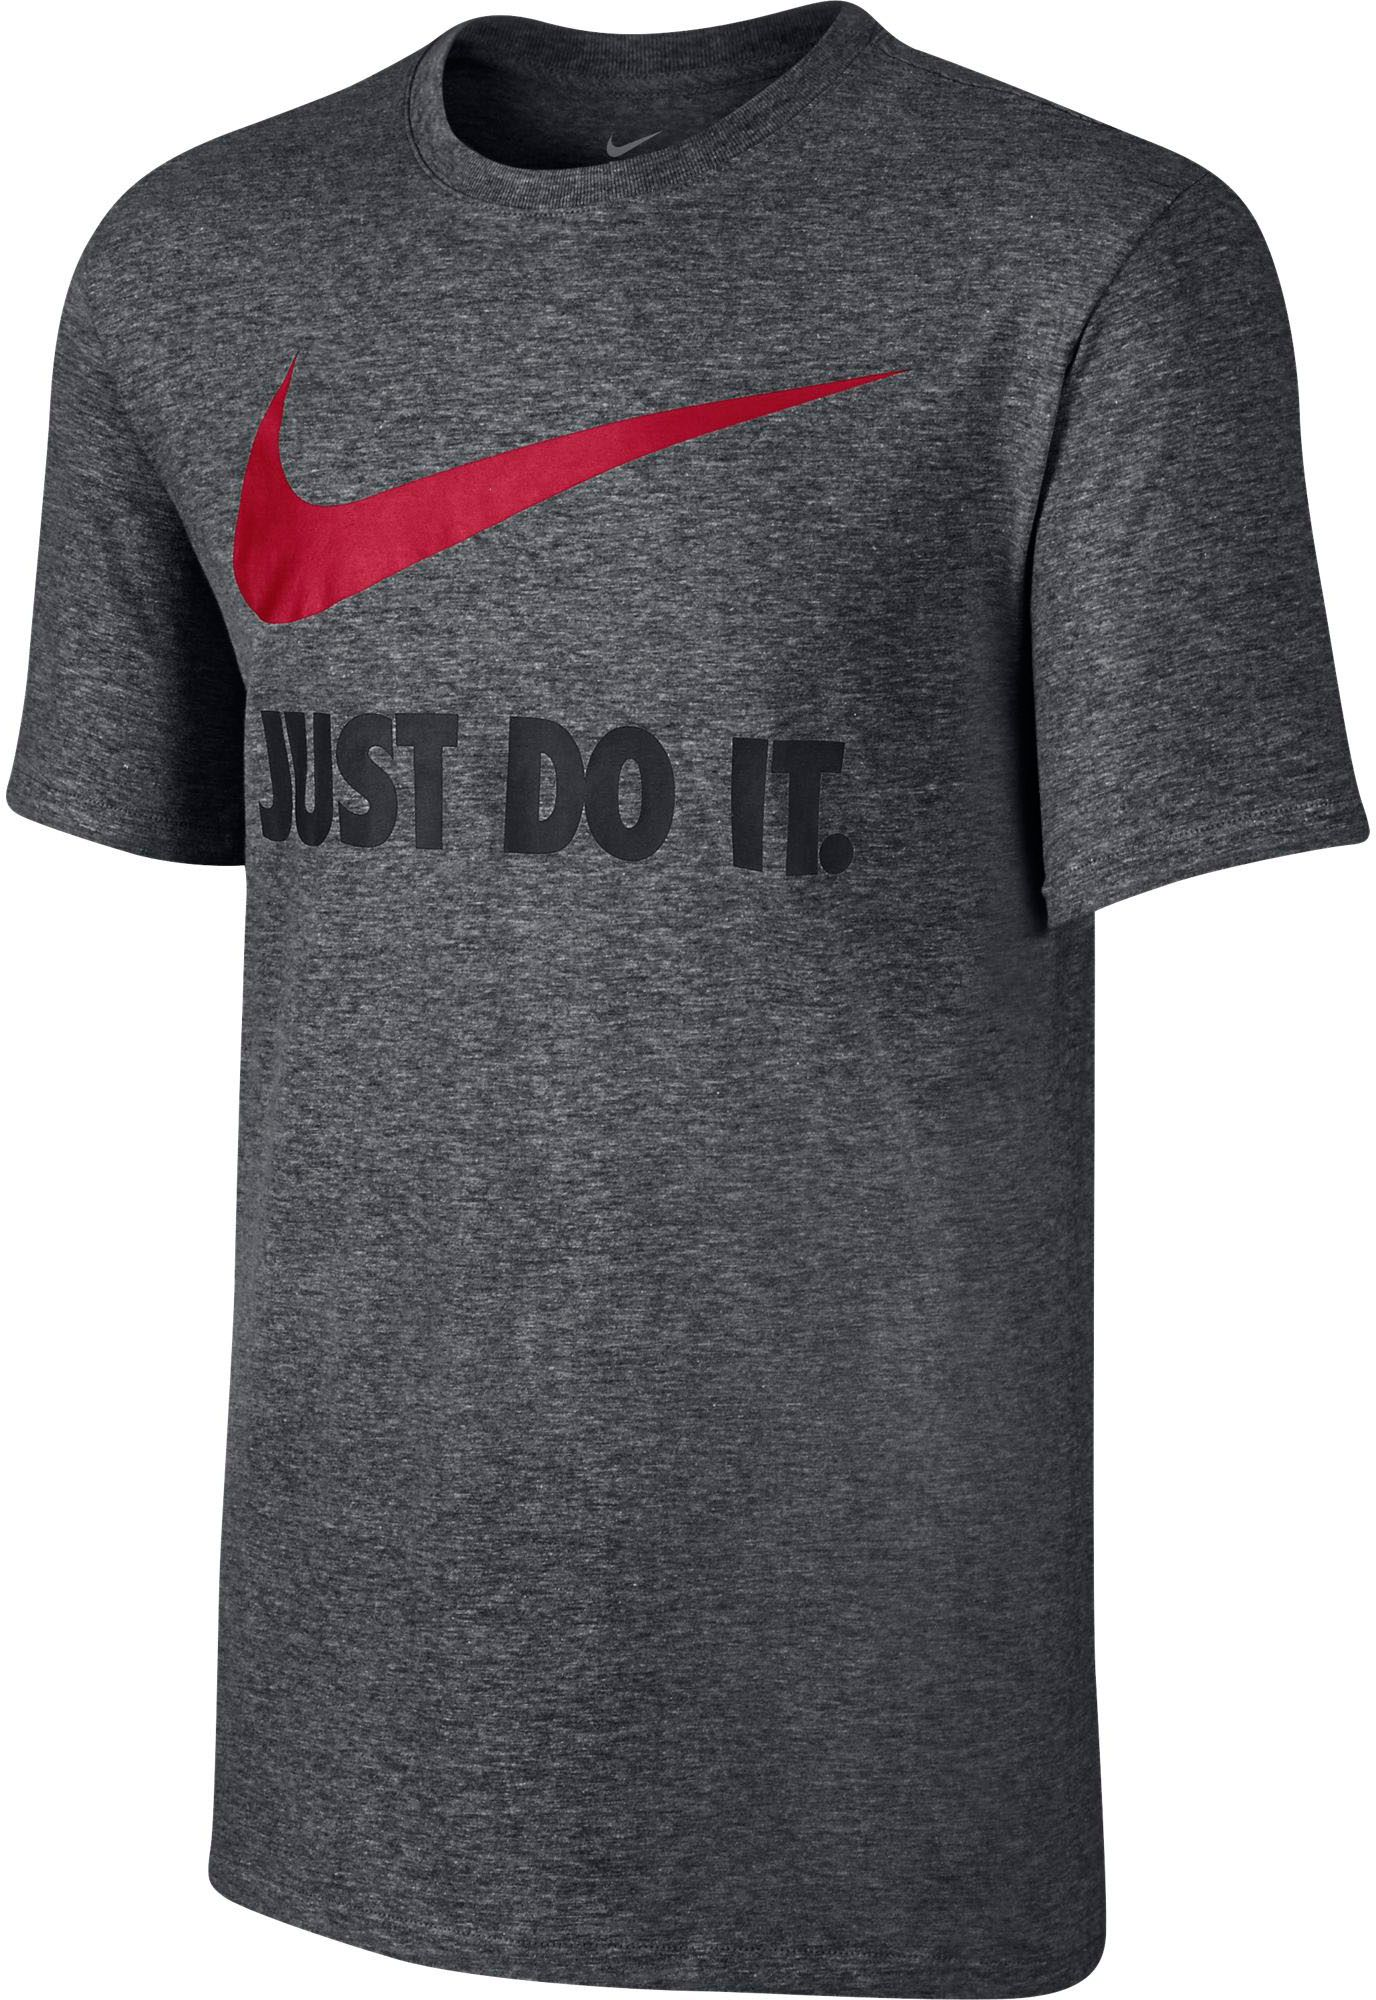 still doing it nike t shirt 7 things you probably didn 39 t know about still doing it nike t. Black Bedroom Furniture Sets. Home Design Ideas